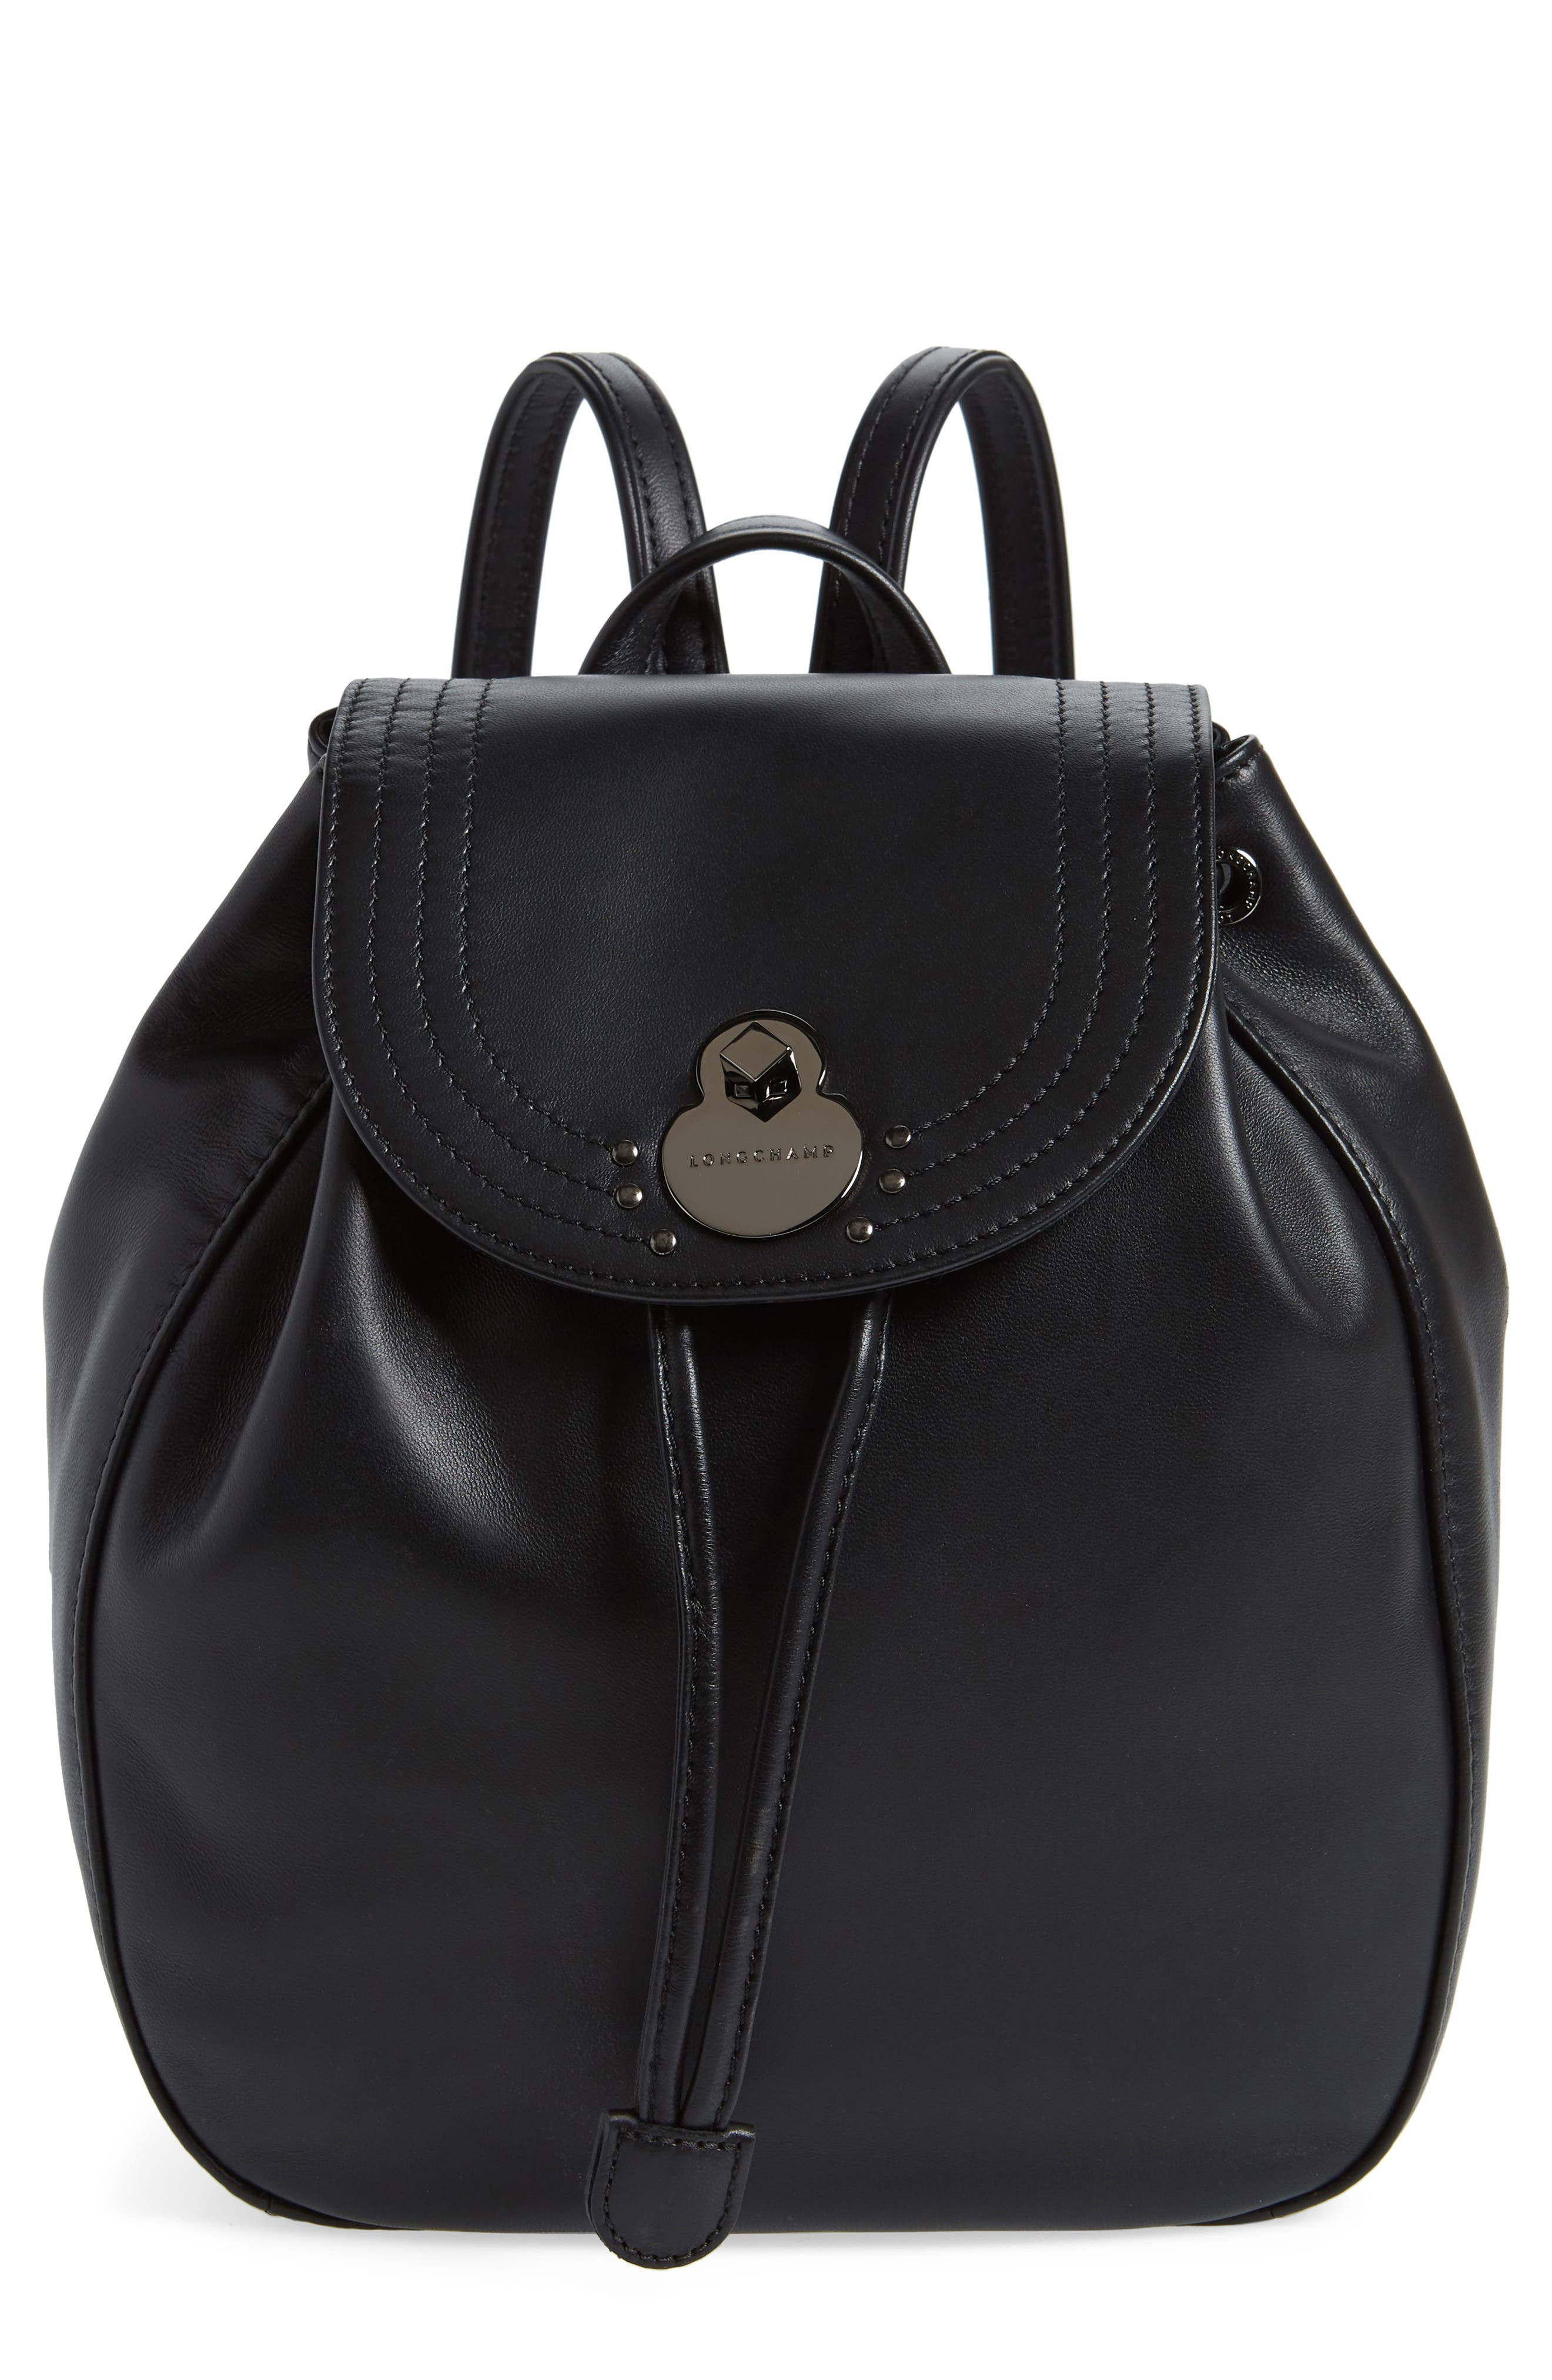 Cavalcade Leather Backpack - Black